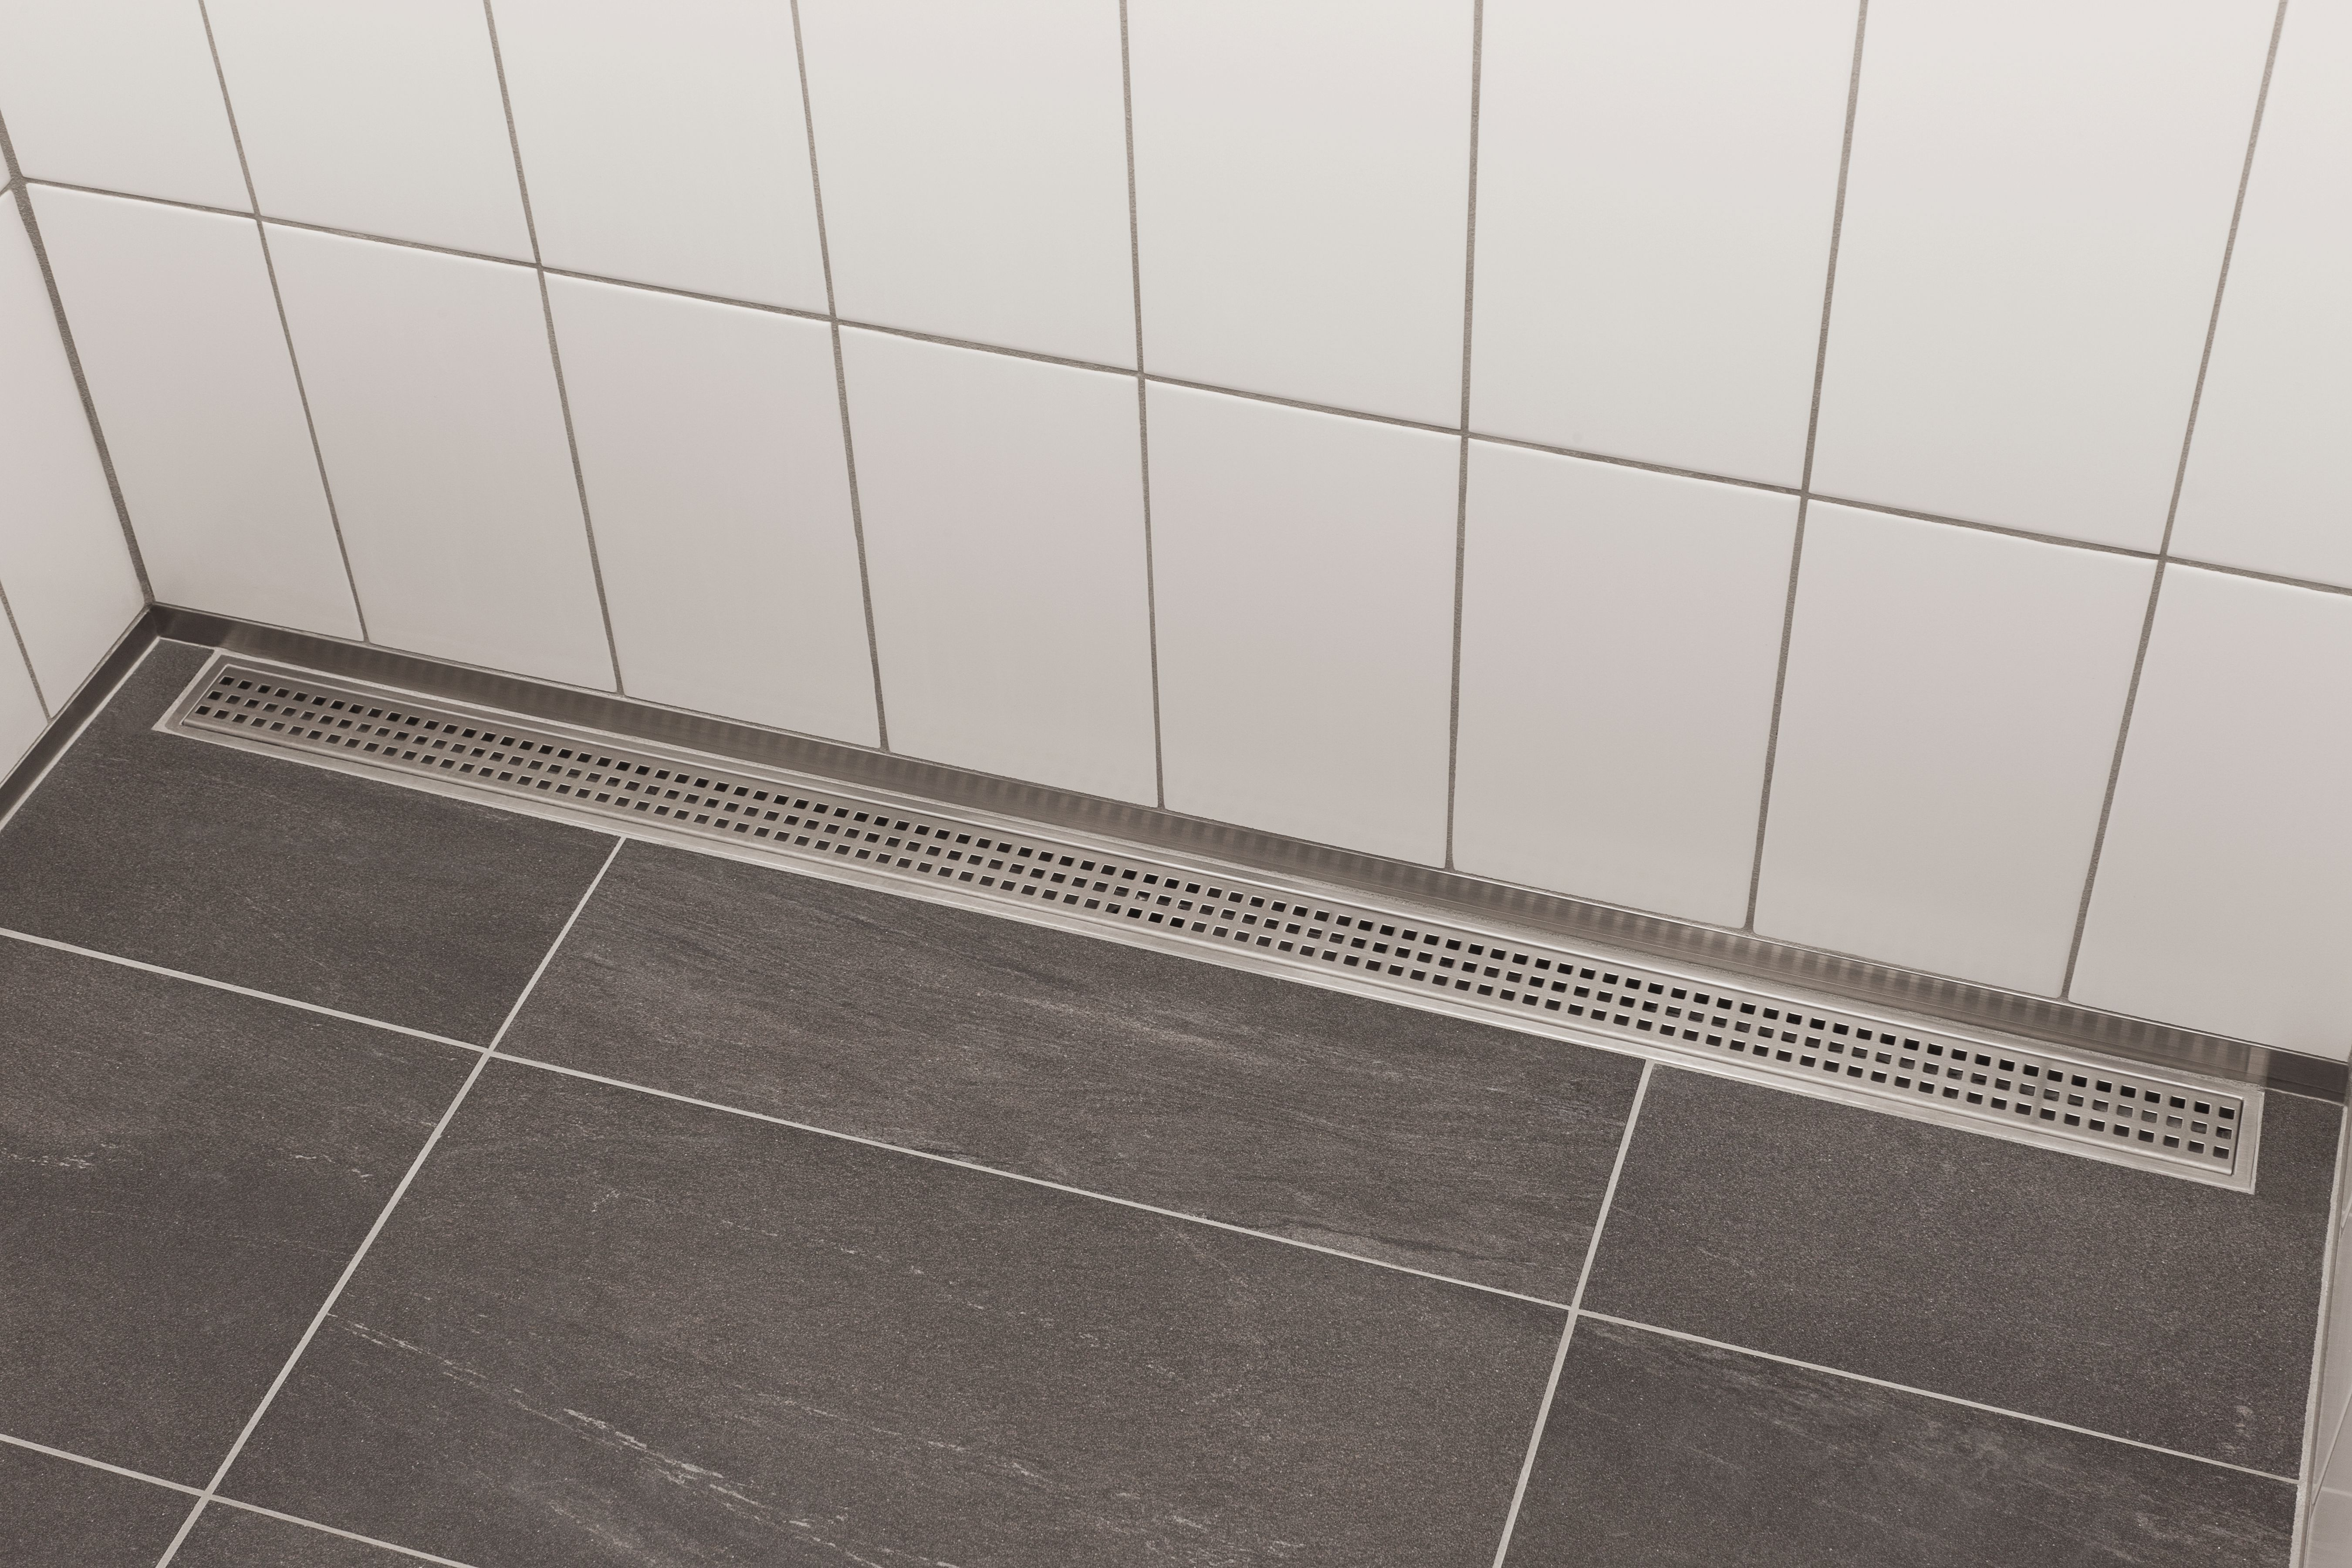 10 In Floor Drains Cover